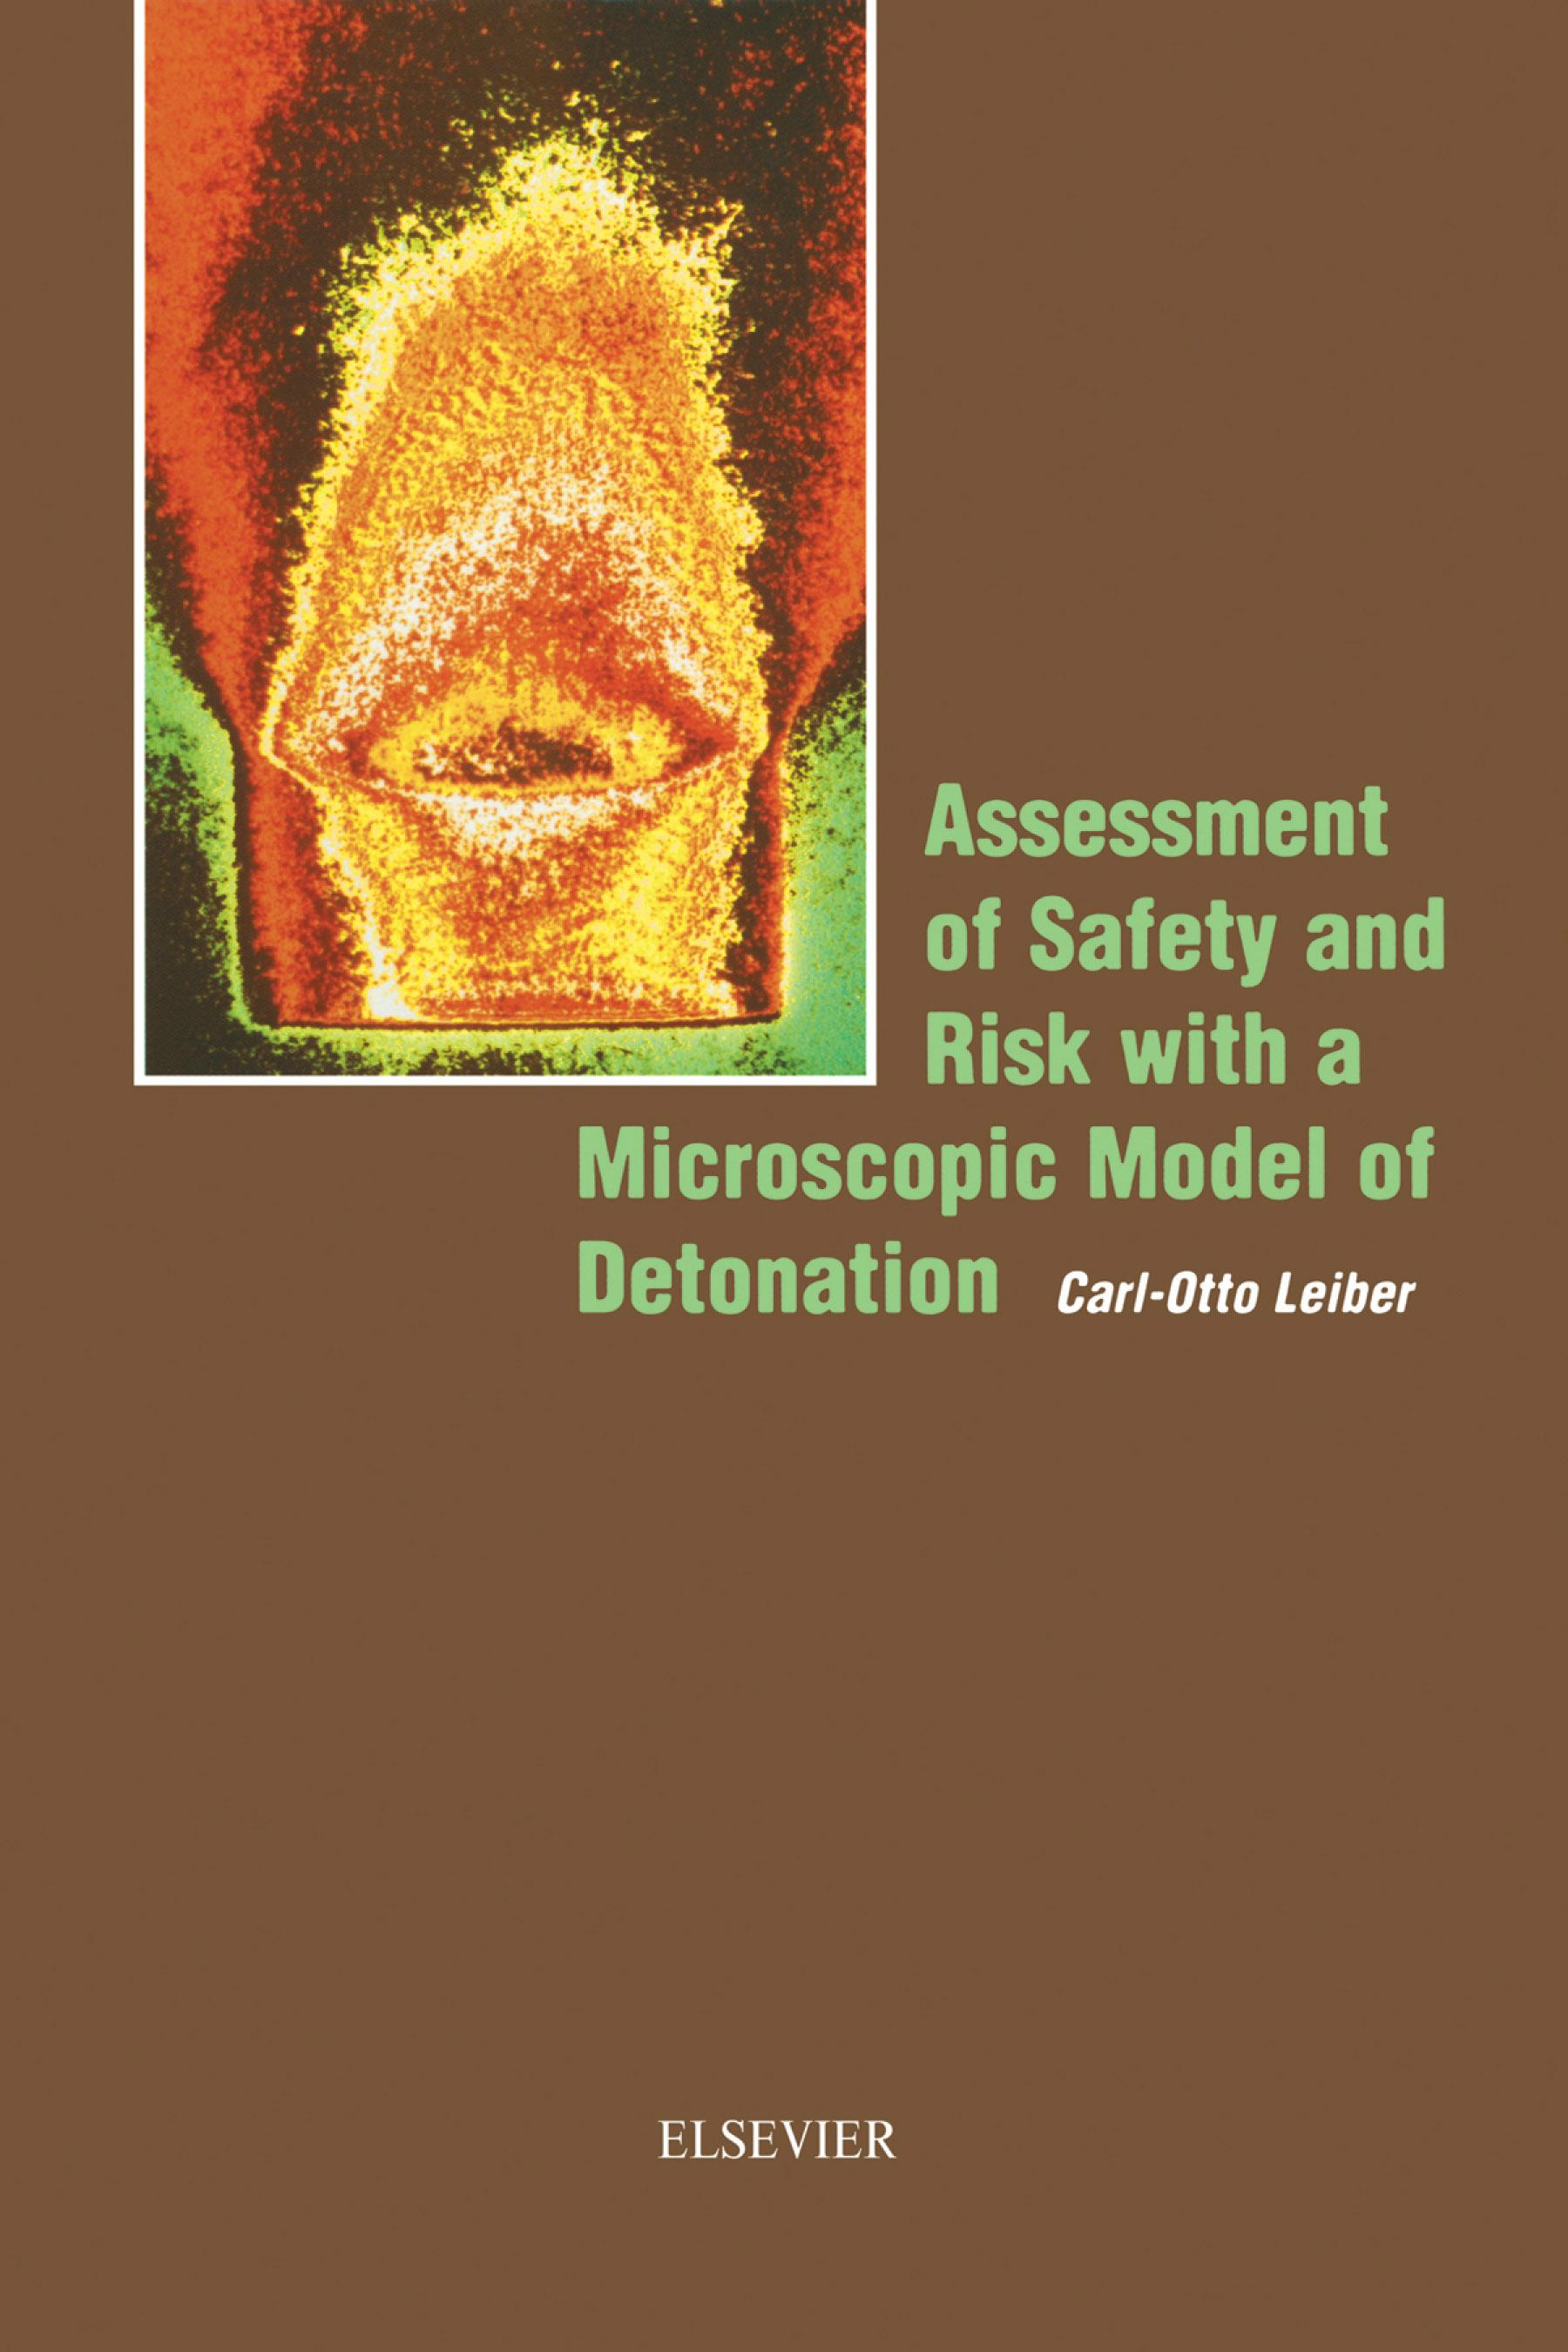 Assessment of Safety and Risk with a Microscopic Model of Detonation EB9780080527628